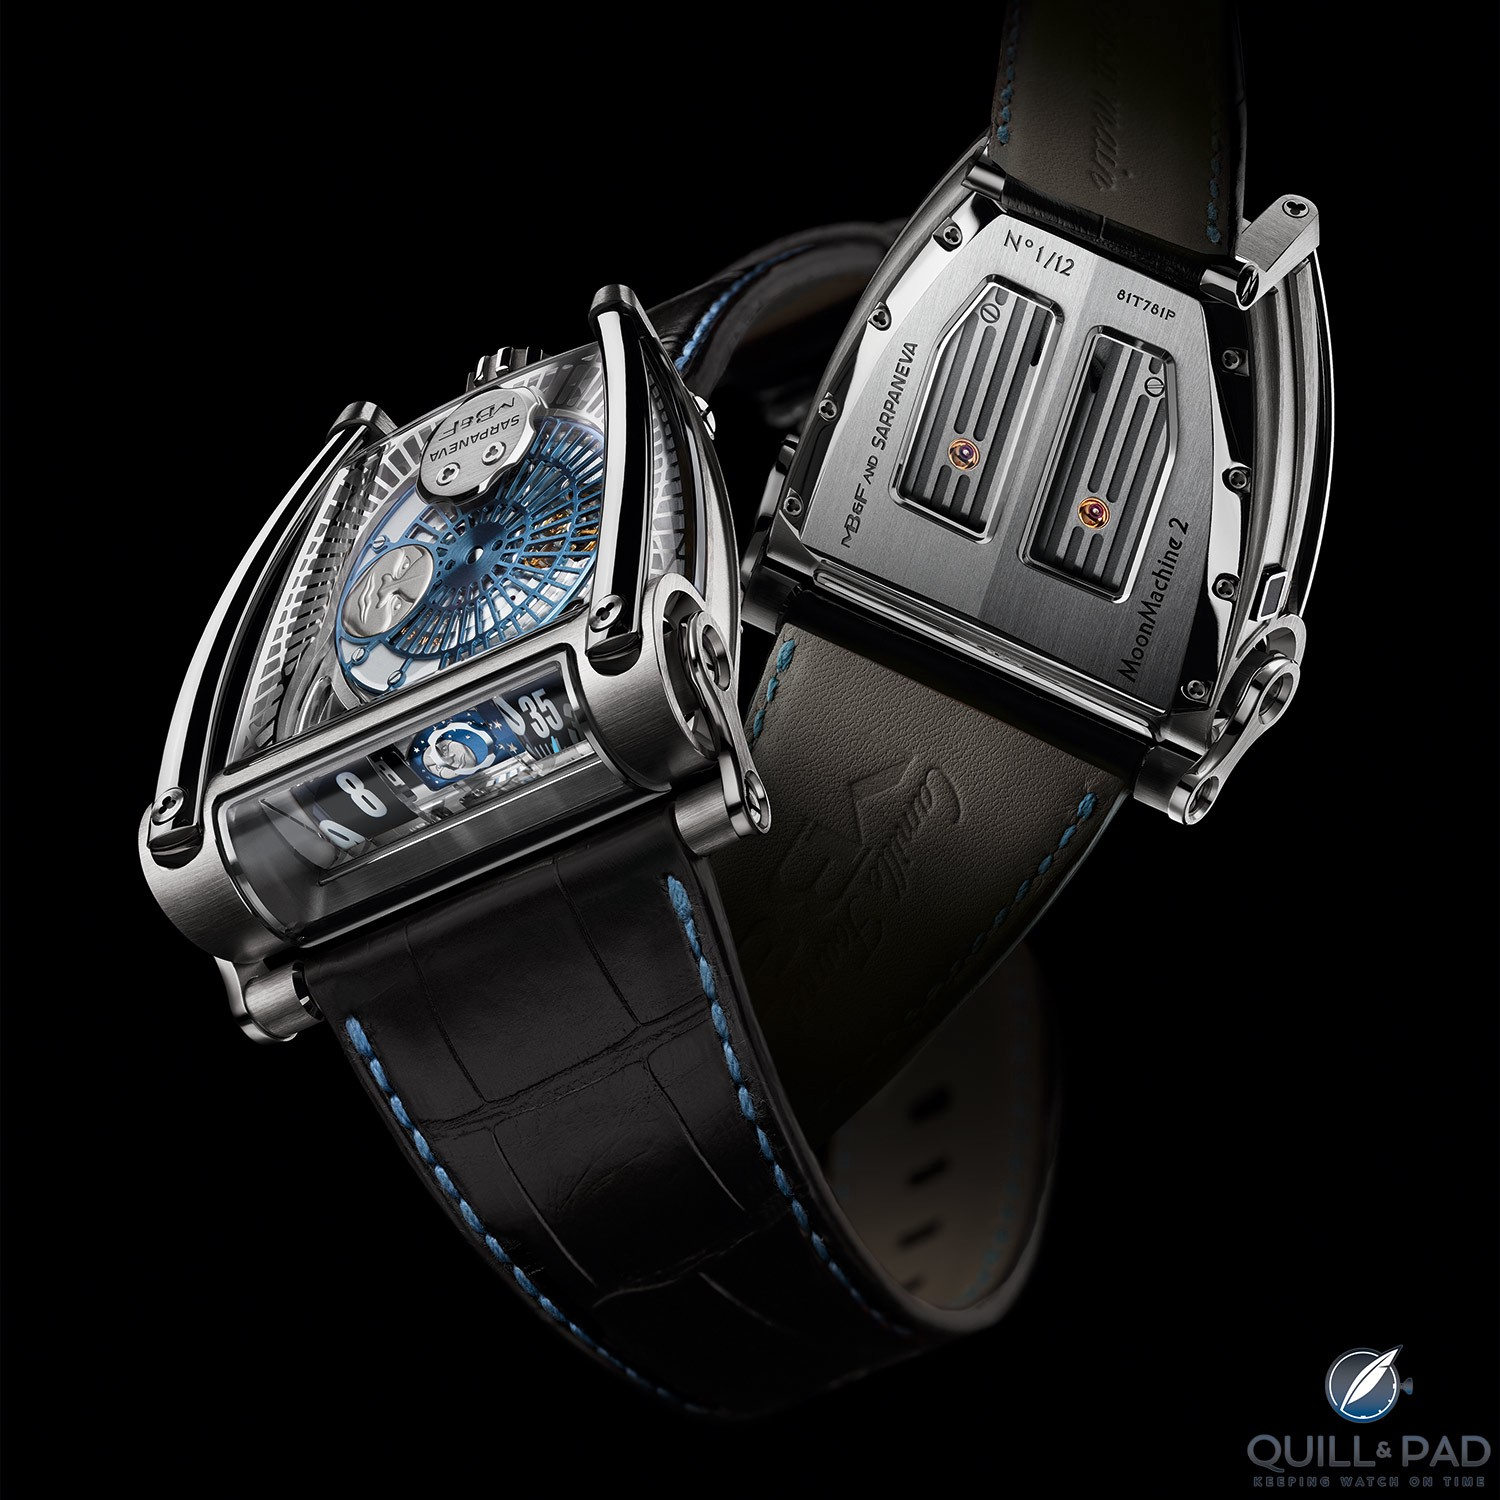 MoonMachine 2 by MB&F with Stepan Sarpaneva